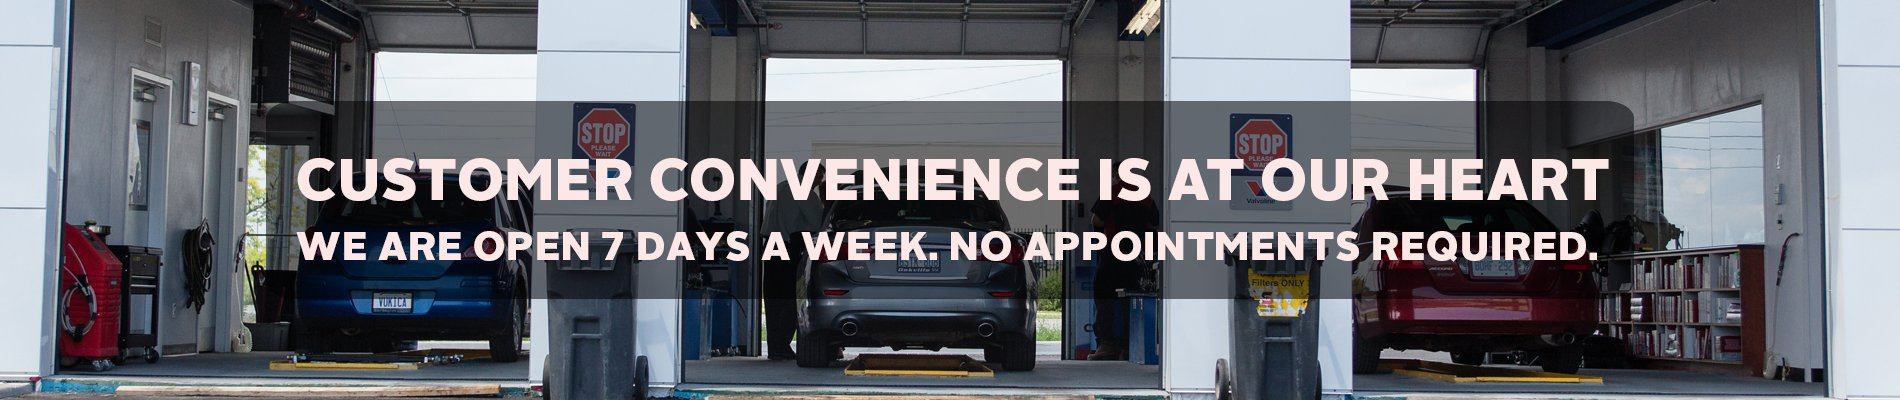 Customer convenience is at our heart. We are open 7 days a week. No appointments required.